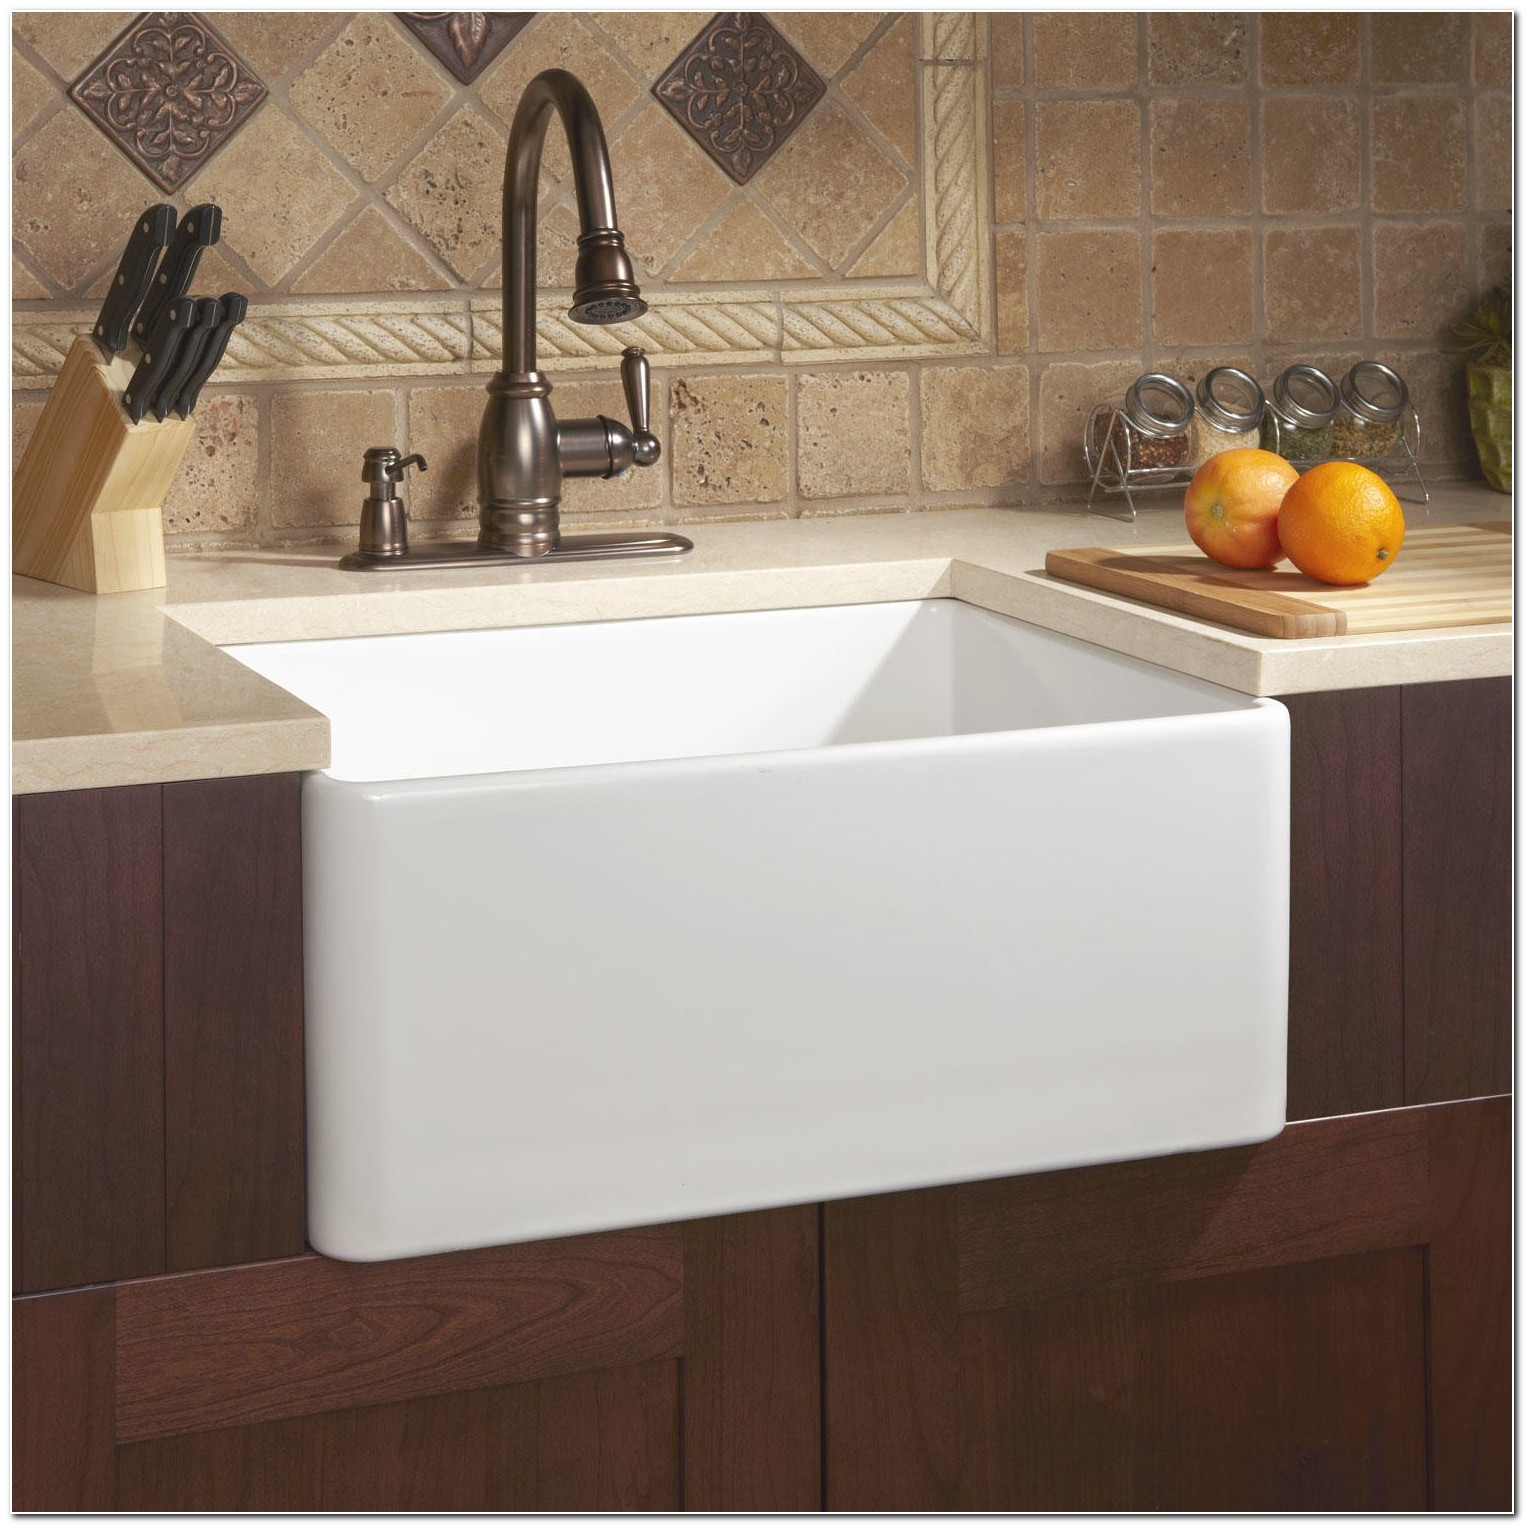 24 Inch Apron Front Sink